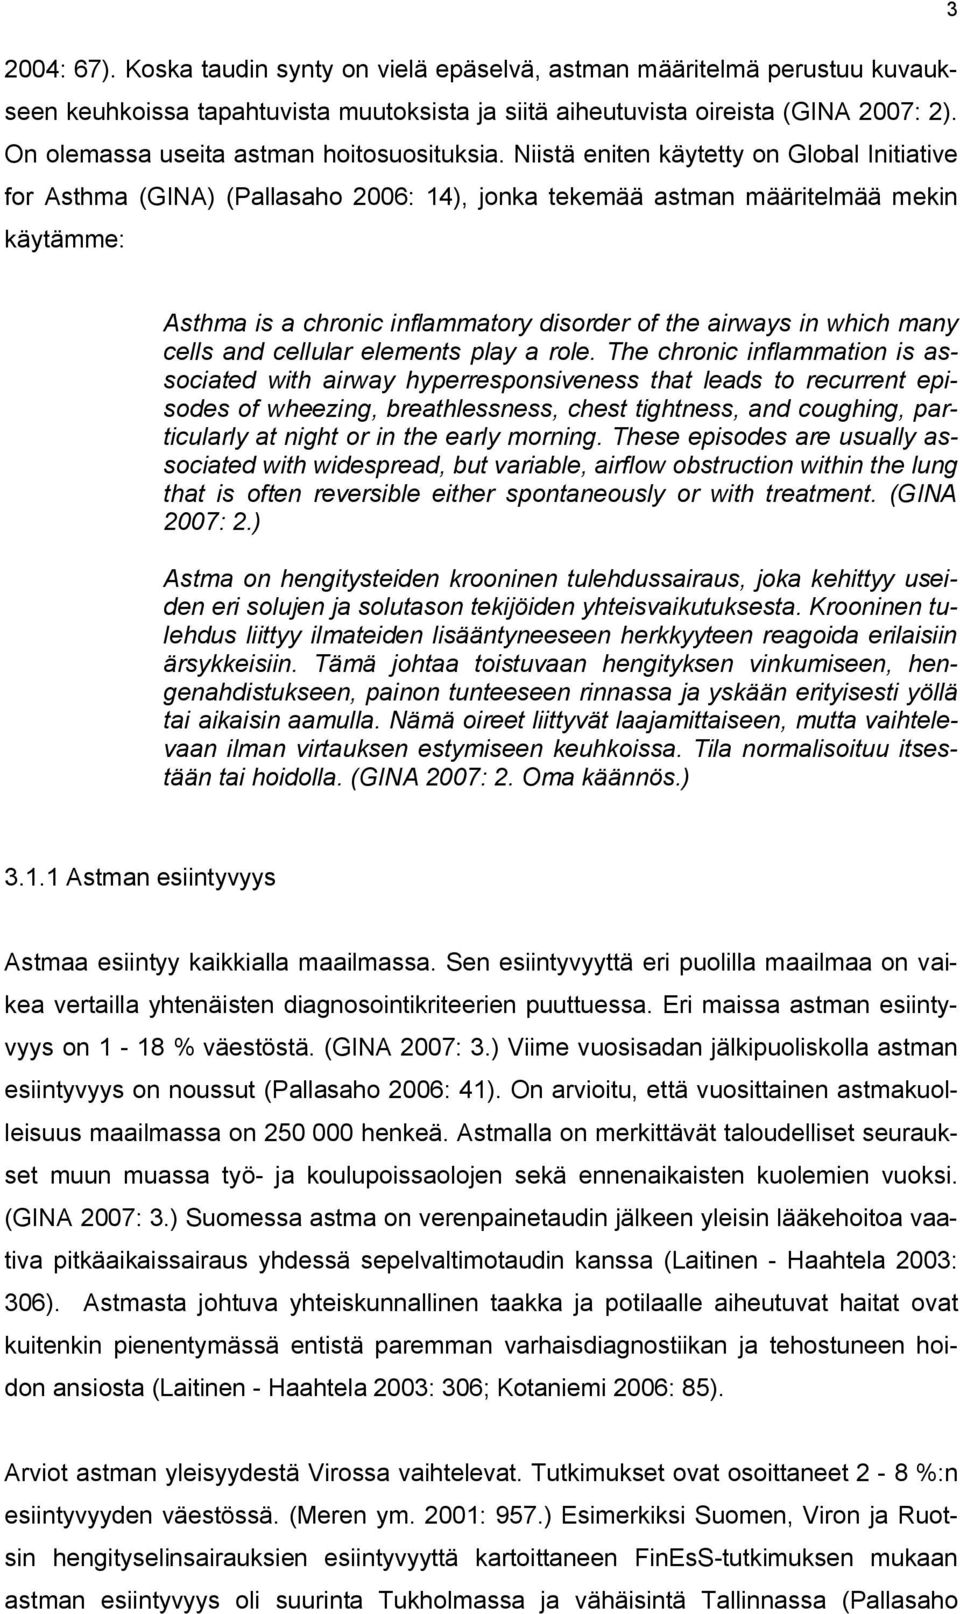 Niistä eniten käytetty on Global Initiative for Asthma (GINA) (Pallasaho 2006: 14), jonka tekemää astman määritelmää mekin käytämme: Asthma is a chronic inflammatory disorder of the airways in which